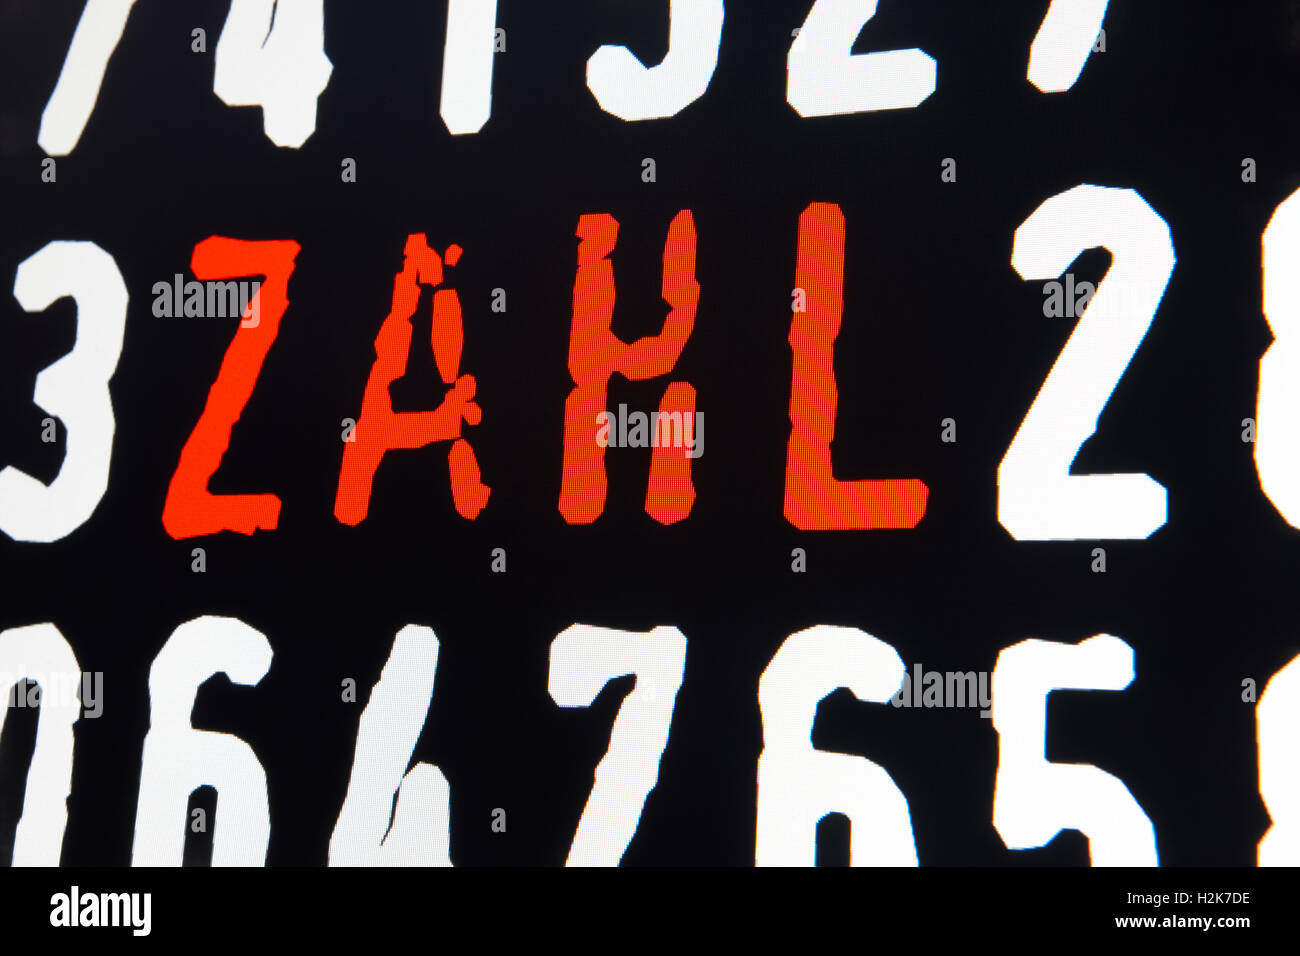 Computer screen with zahl text on black background. Horizontal - Stock Image